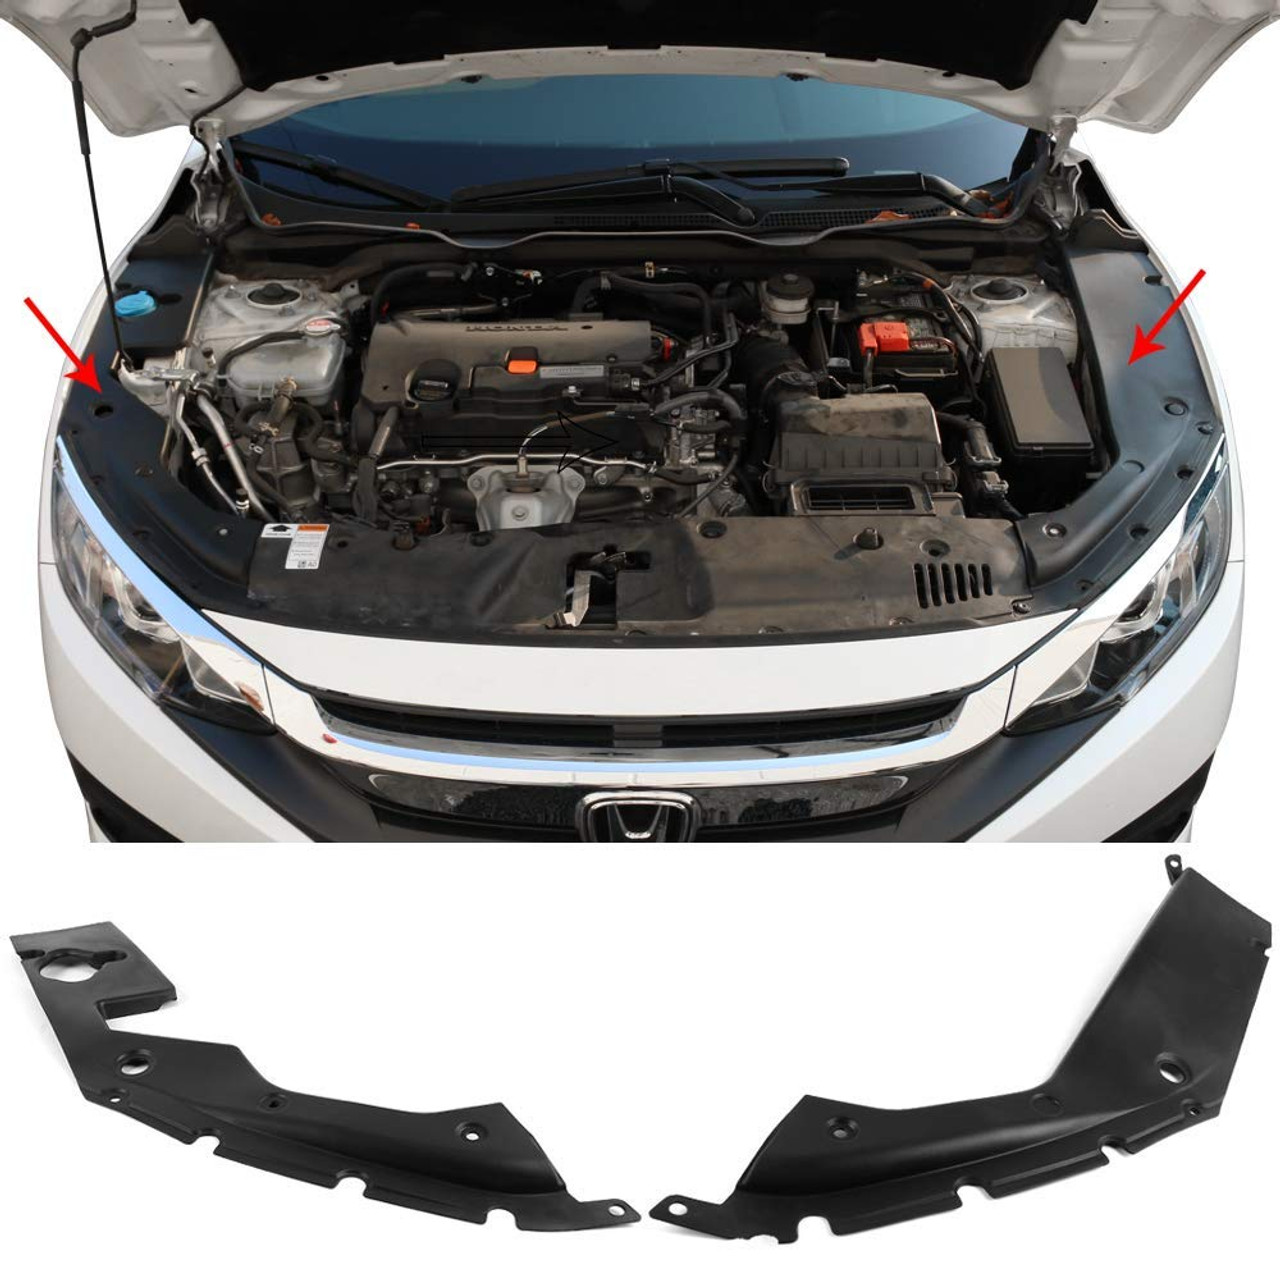 Engine Bay Side Panel Covers Fits 2016-2018 Honda Civic | Unpainted ABS Long Version X Gen 10 Generation Left and Right Pair